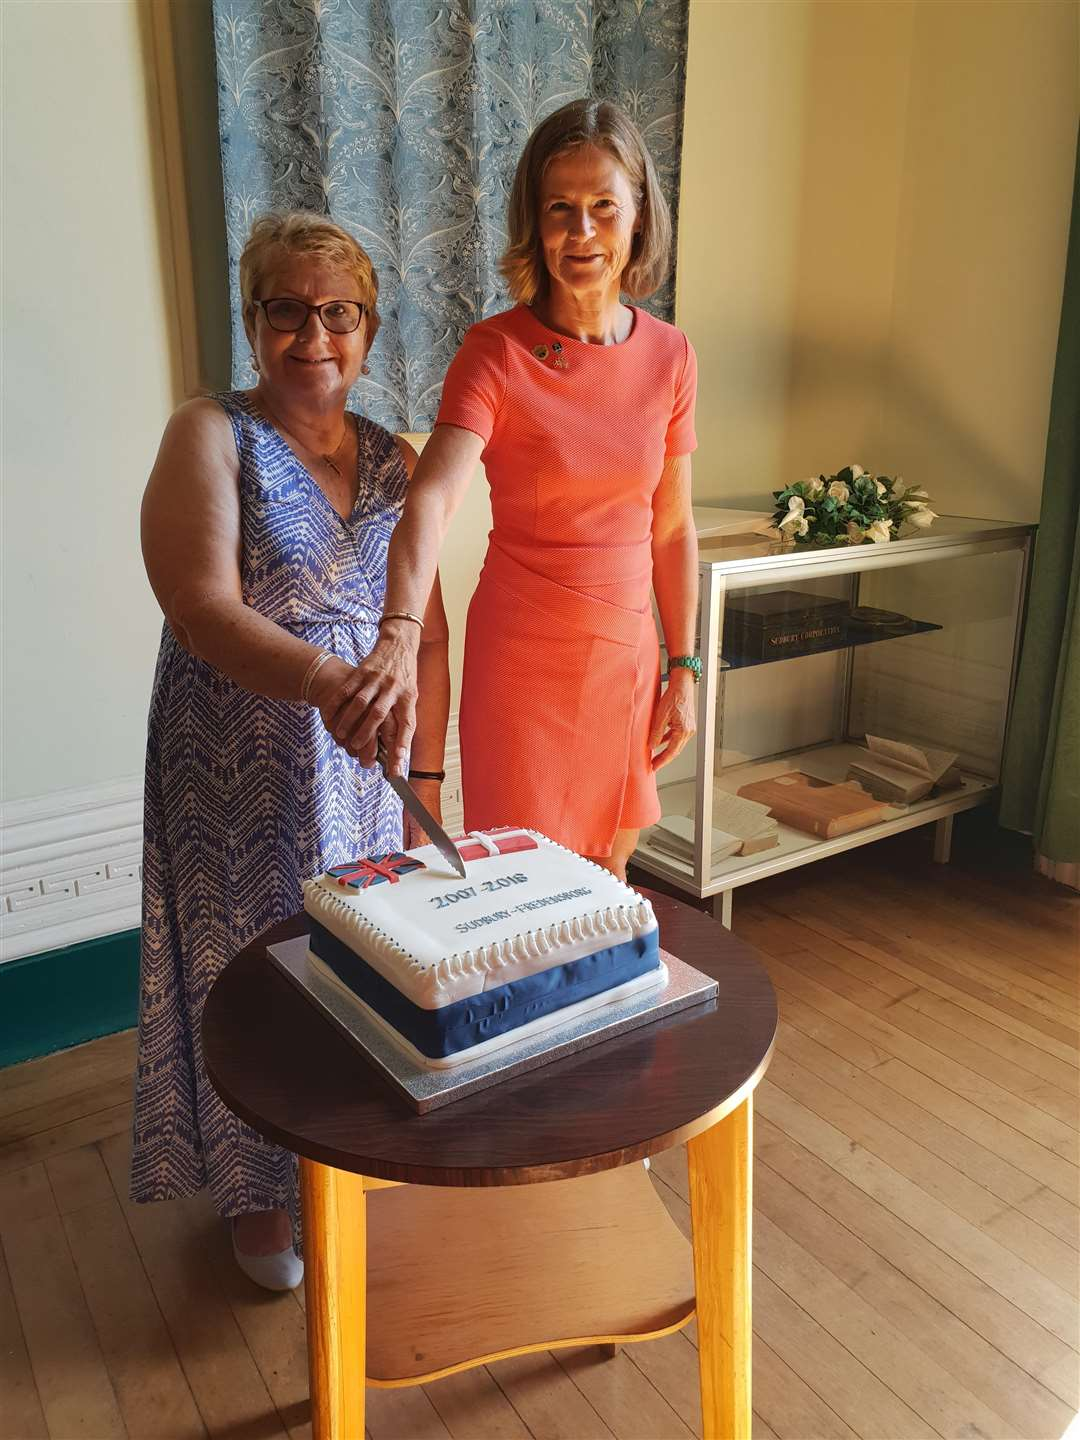 Sudbury mayor Sue Ayres cuts the celebration cake with Tinne Borch Jacobsen, council member of Fredensborg Kommune. (2884022)